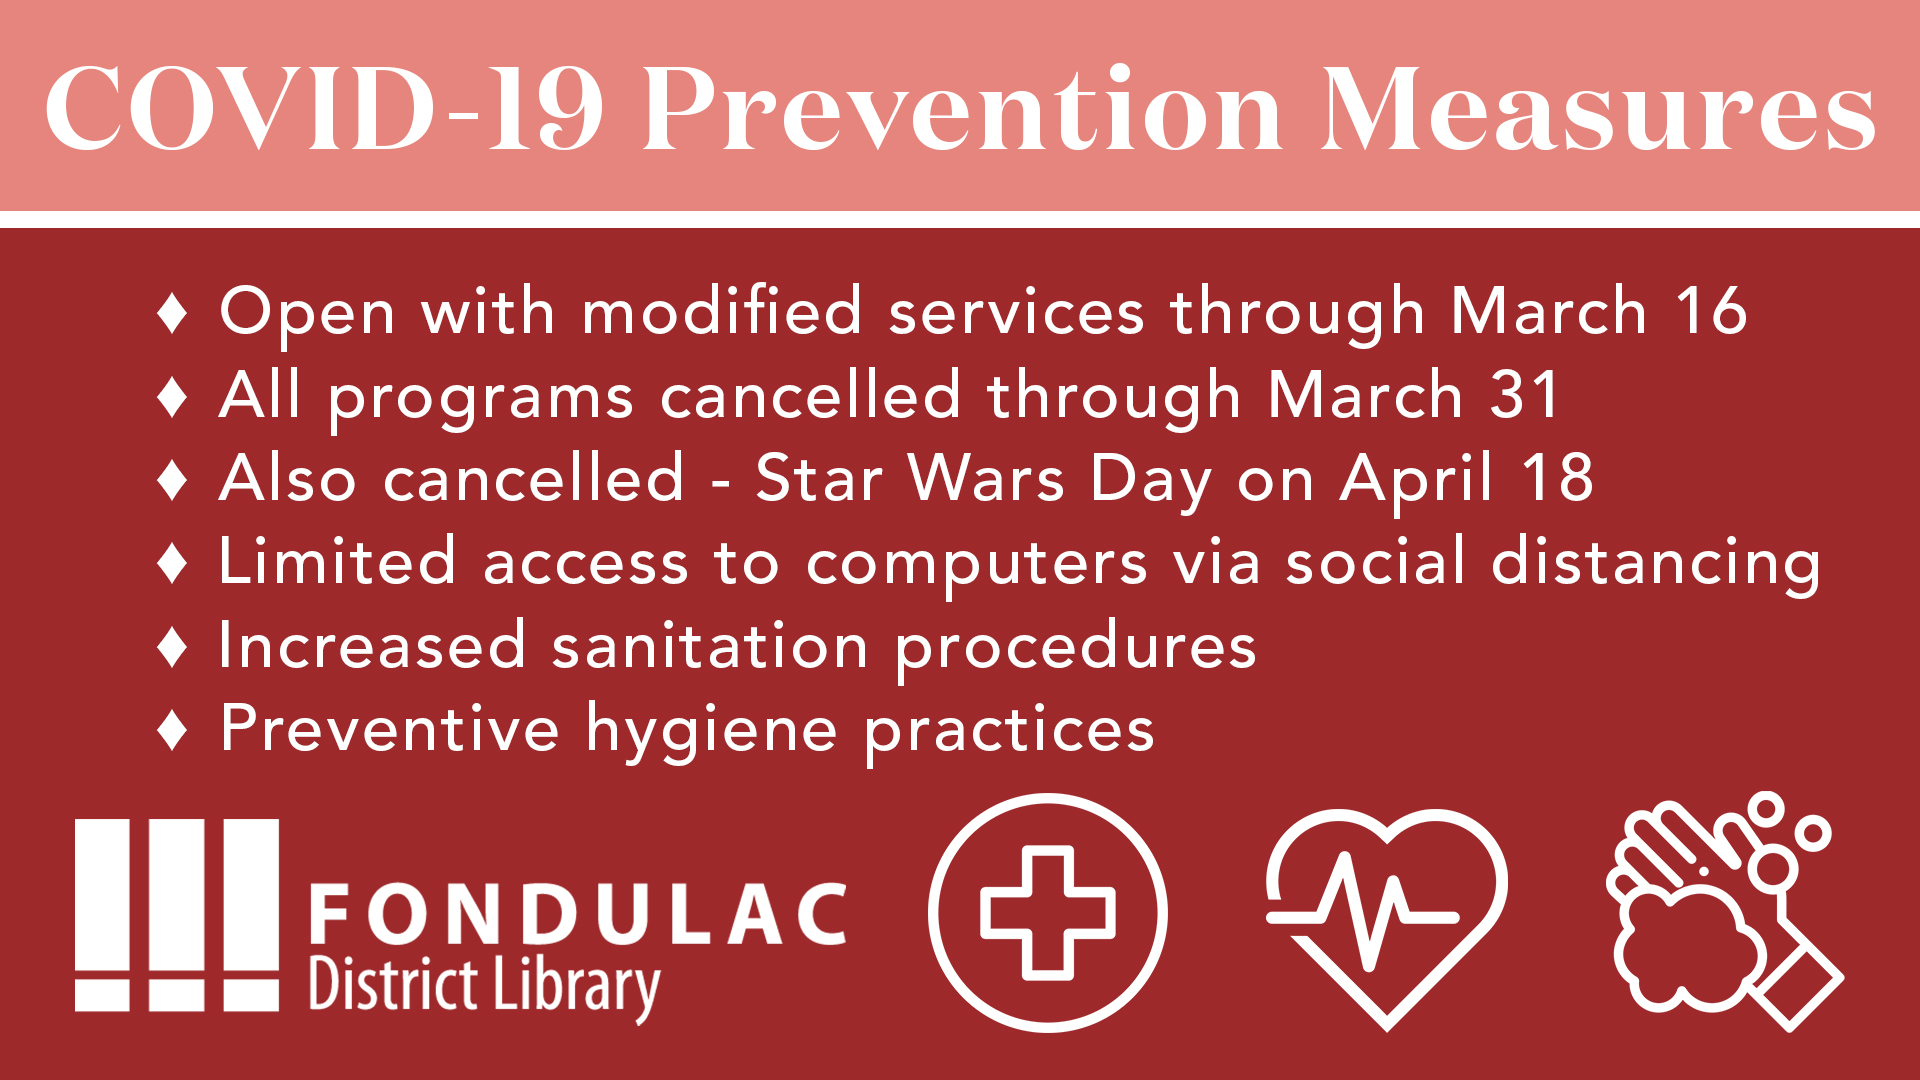 COVID 19 Prevention Measures U2013 Fondulac District Library